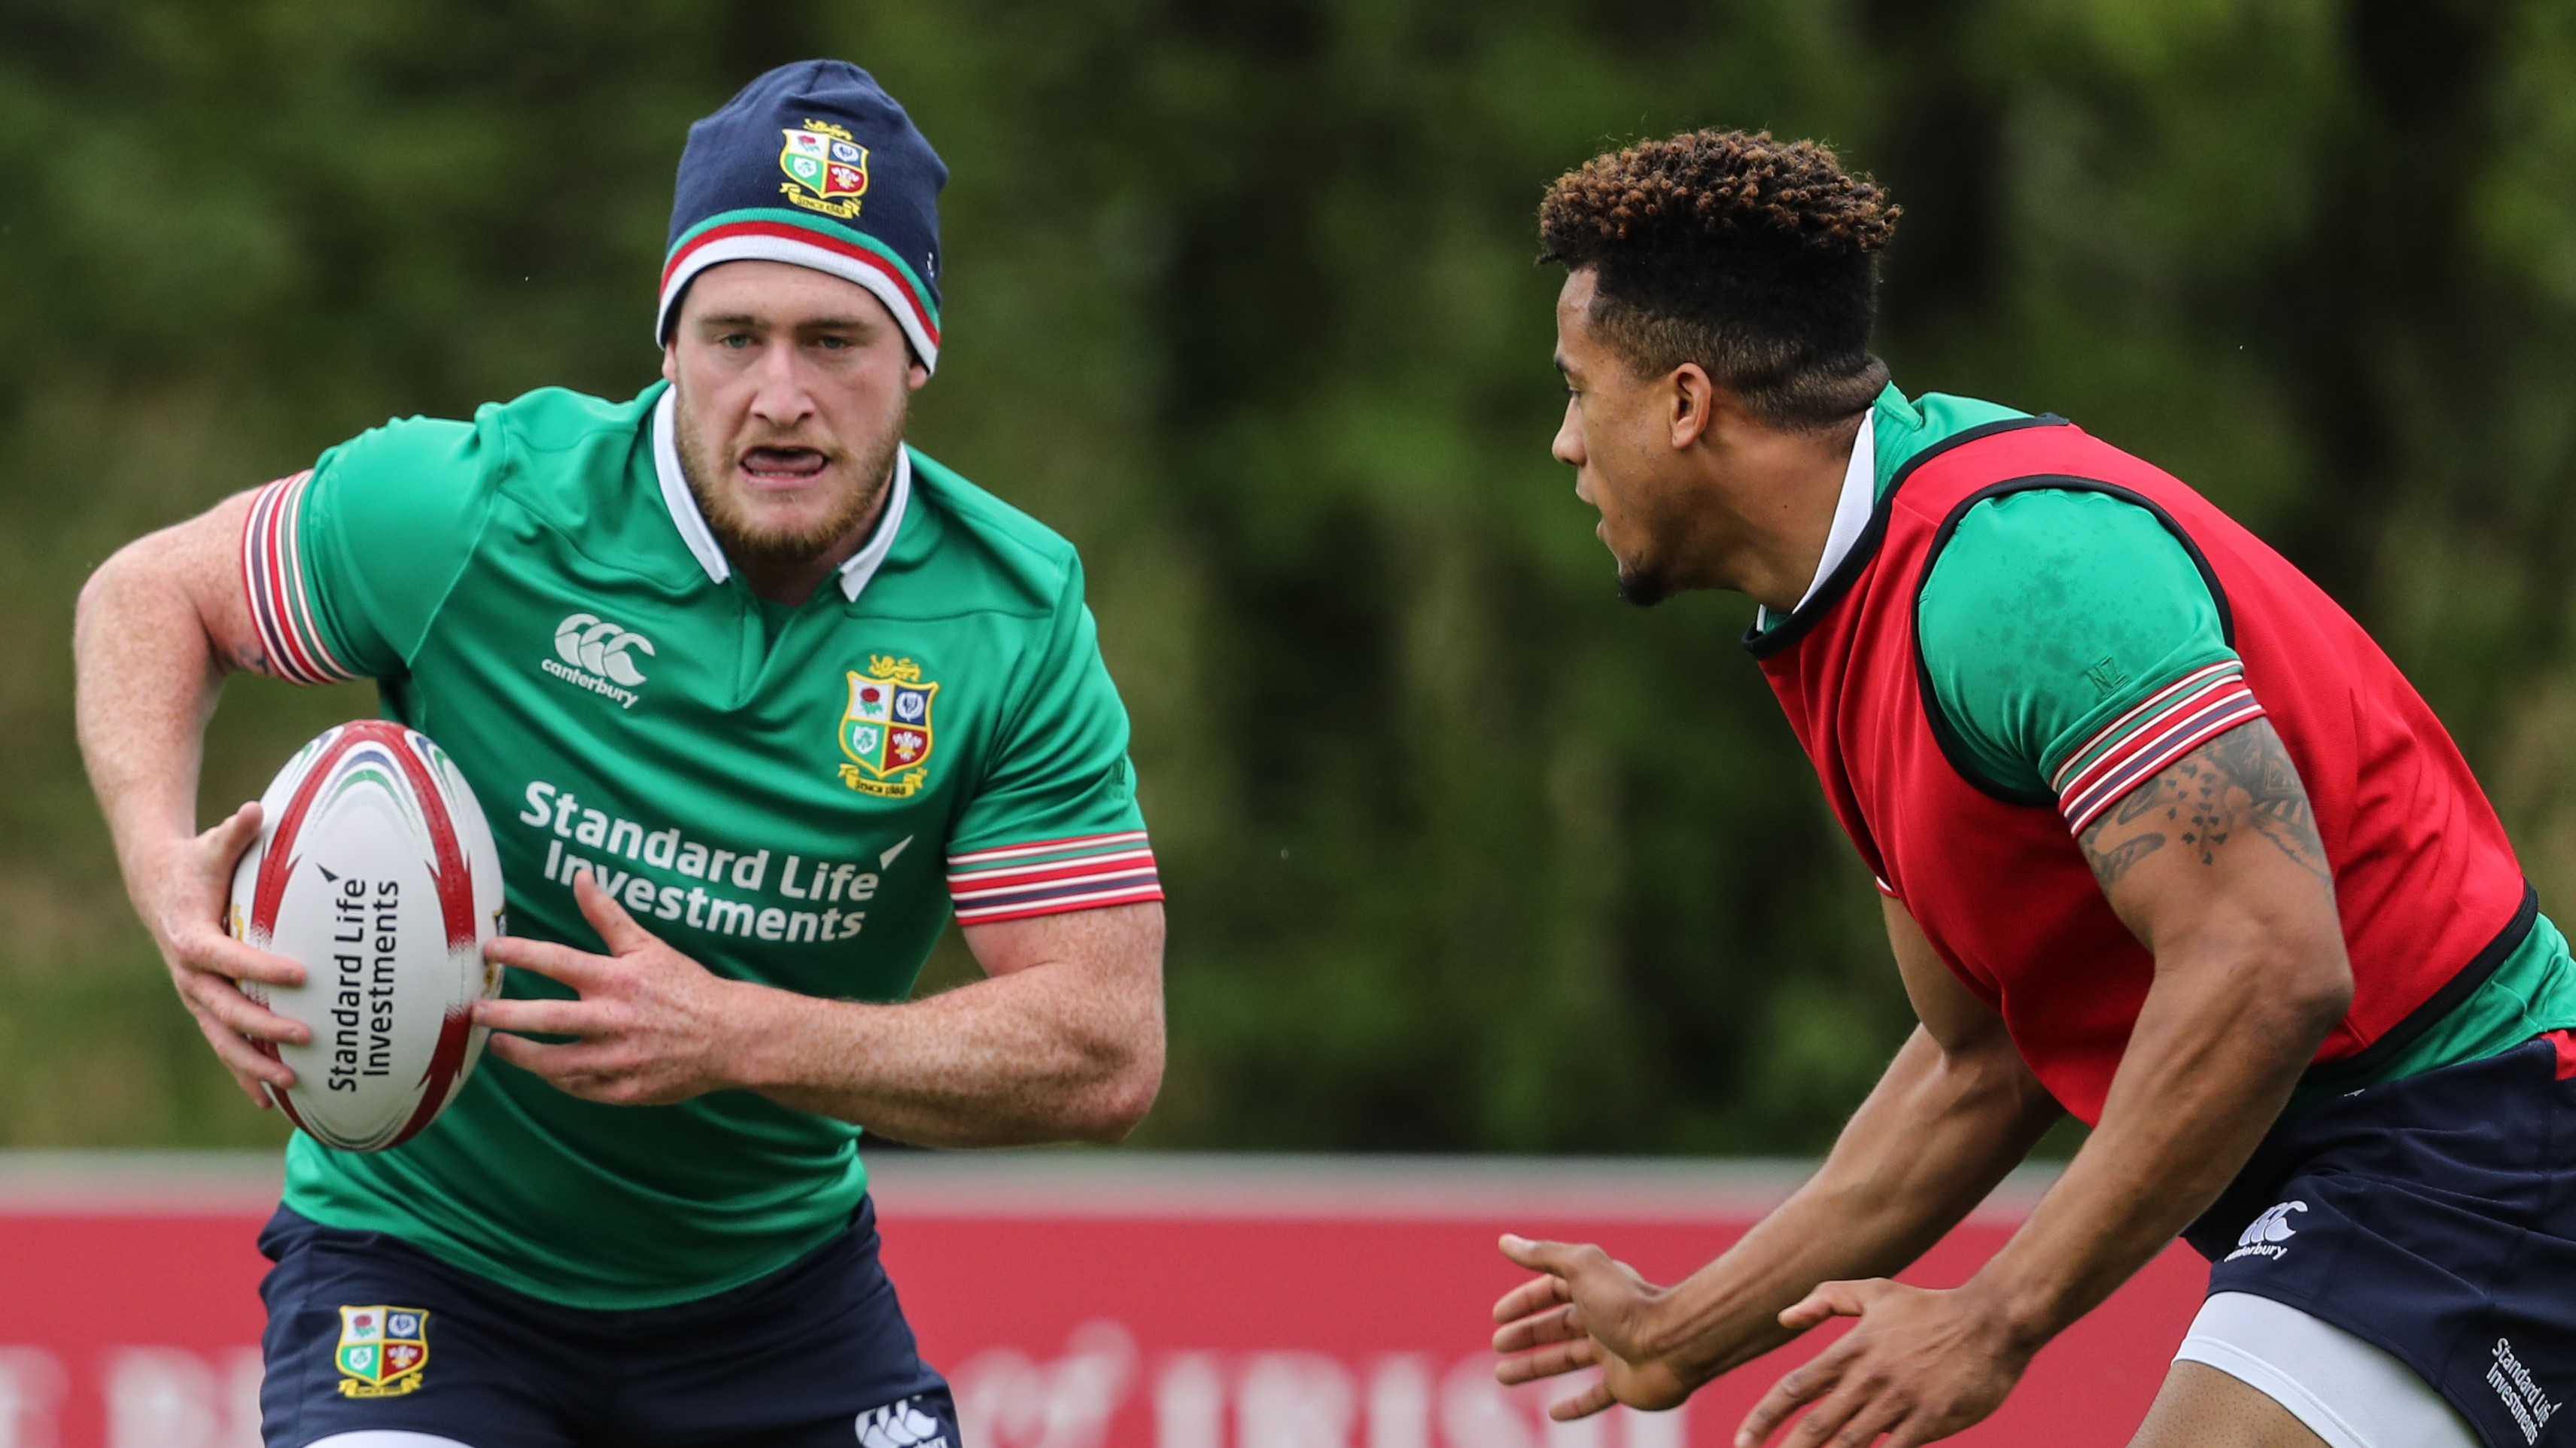 Home nations set for Championship face-off